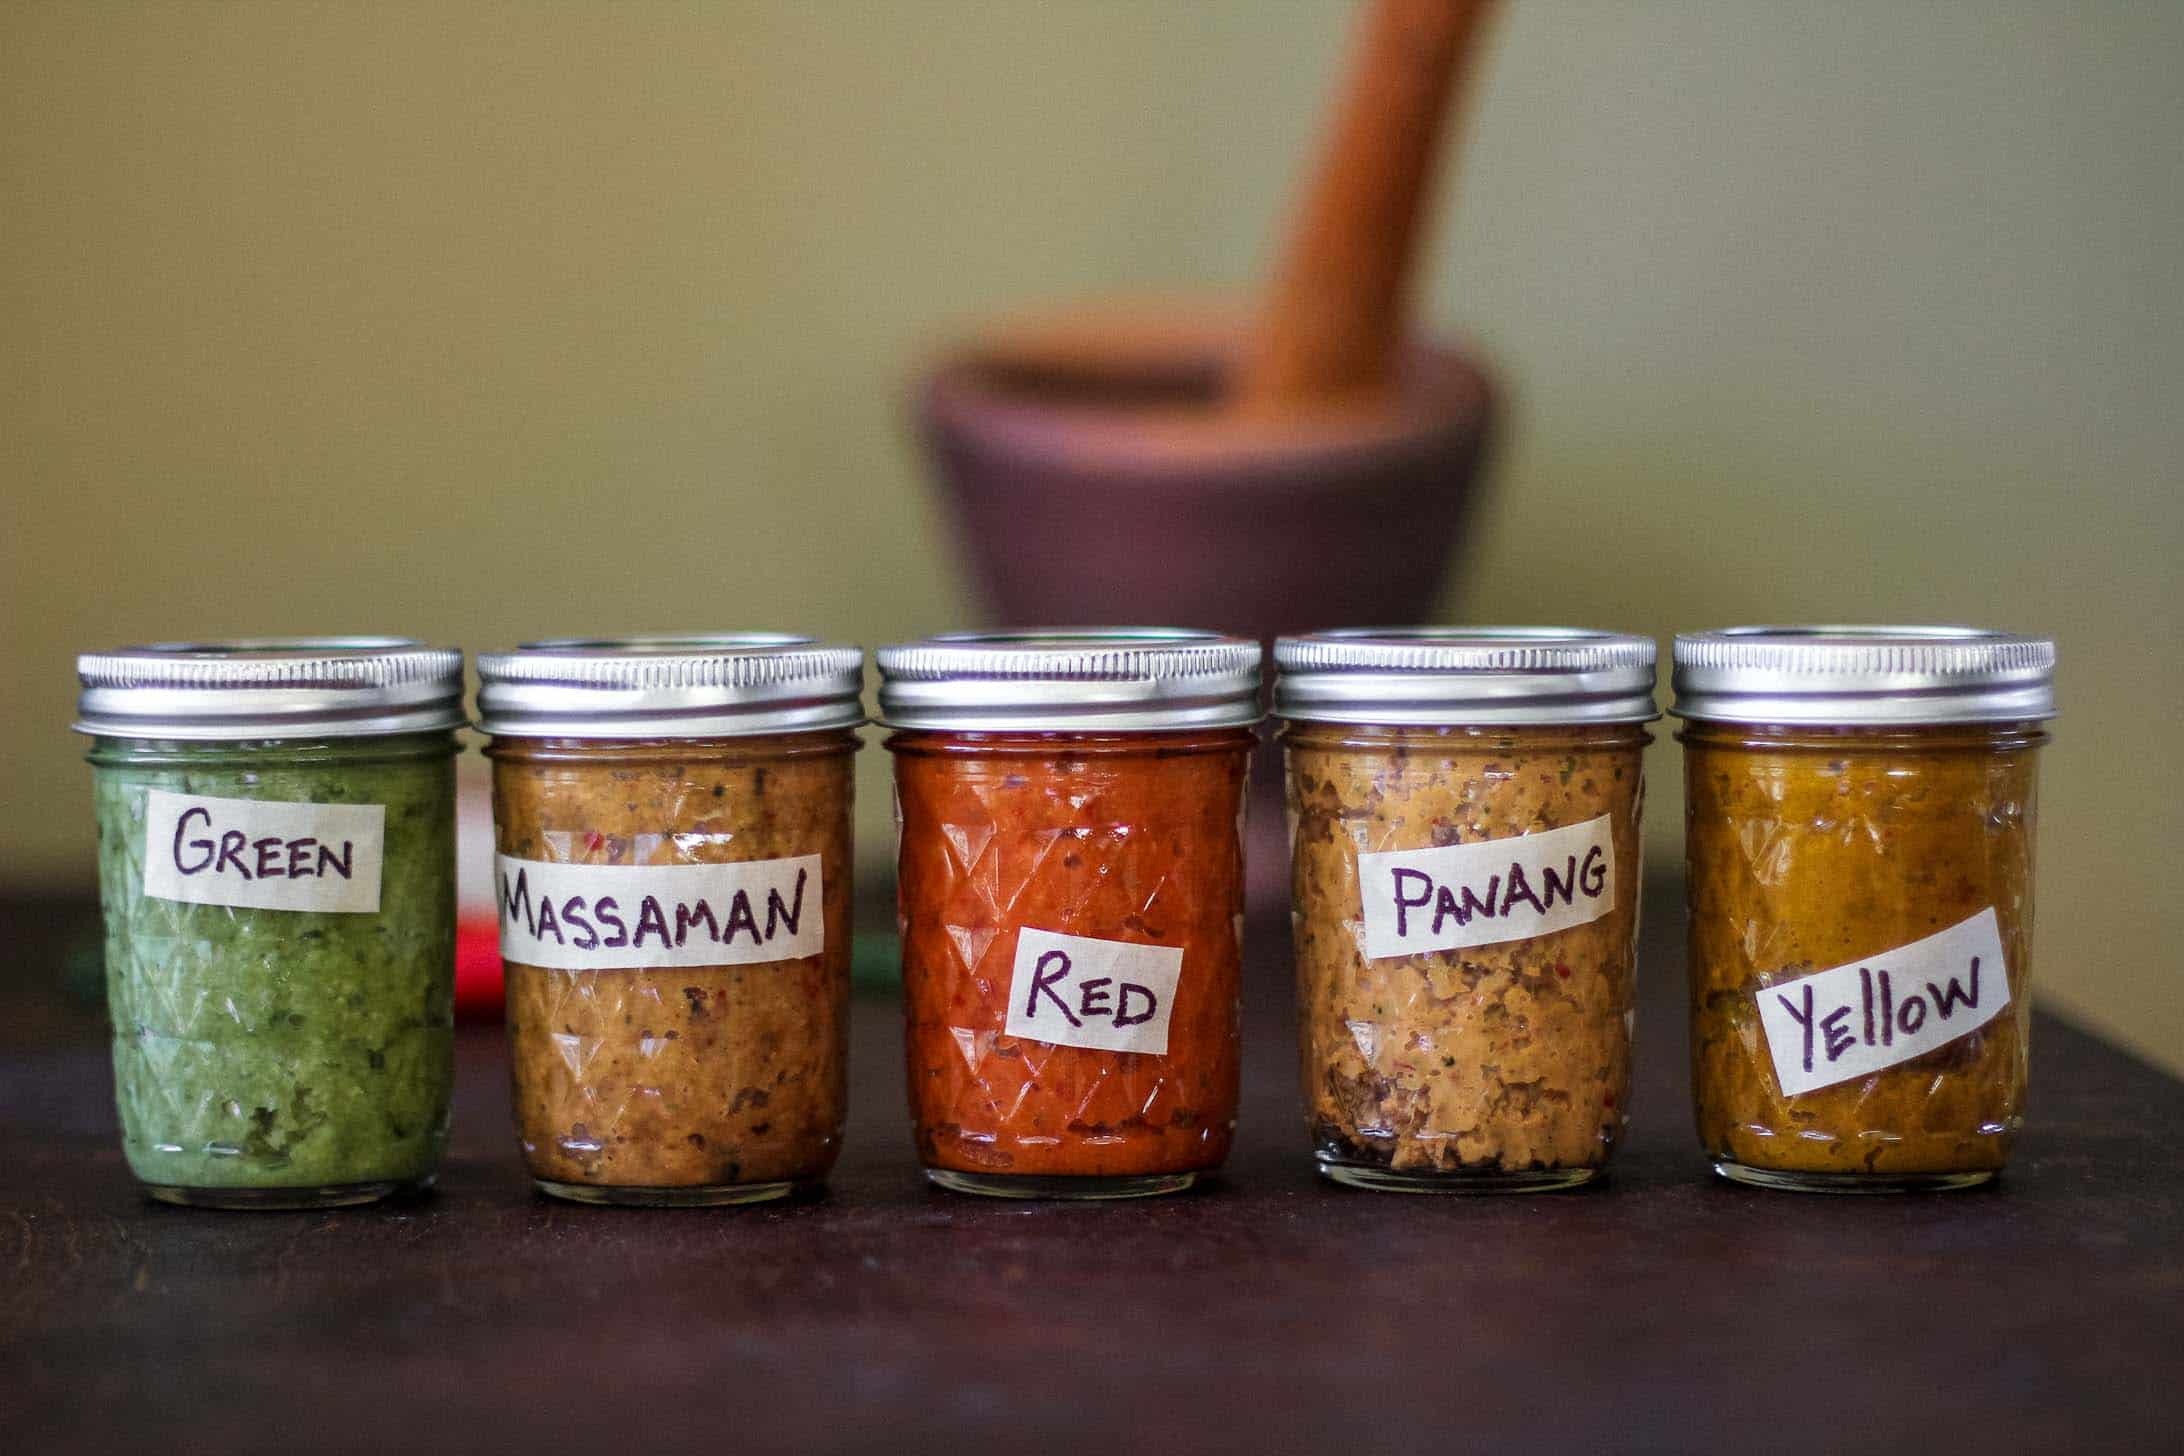 Mason jars of curries -- green, massaman, red, panang and yellow